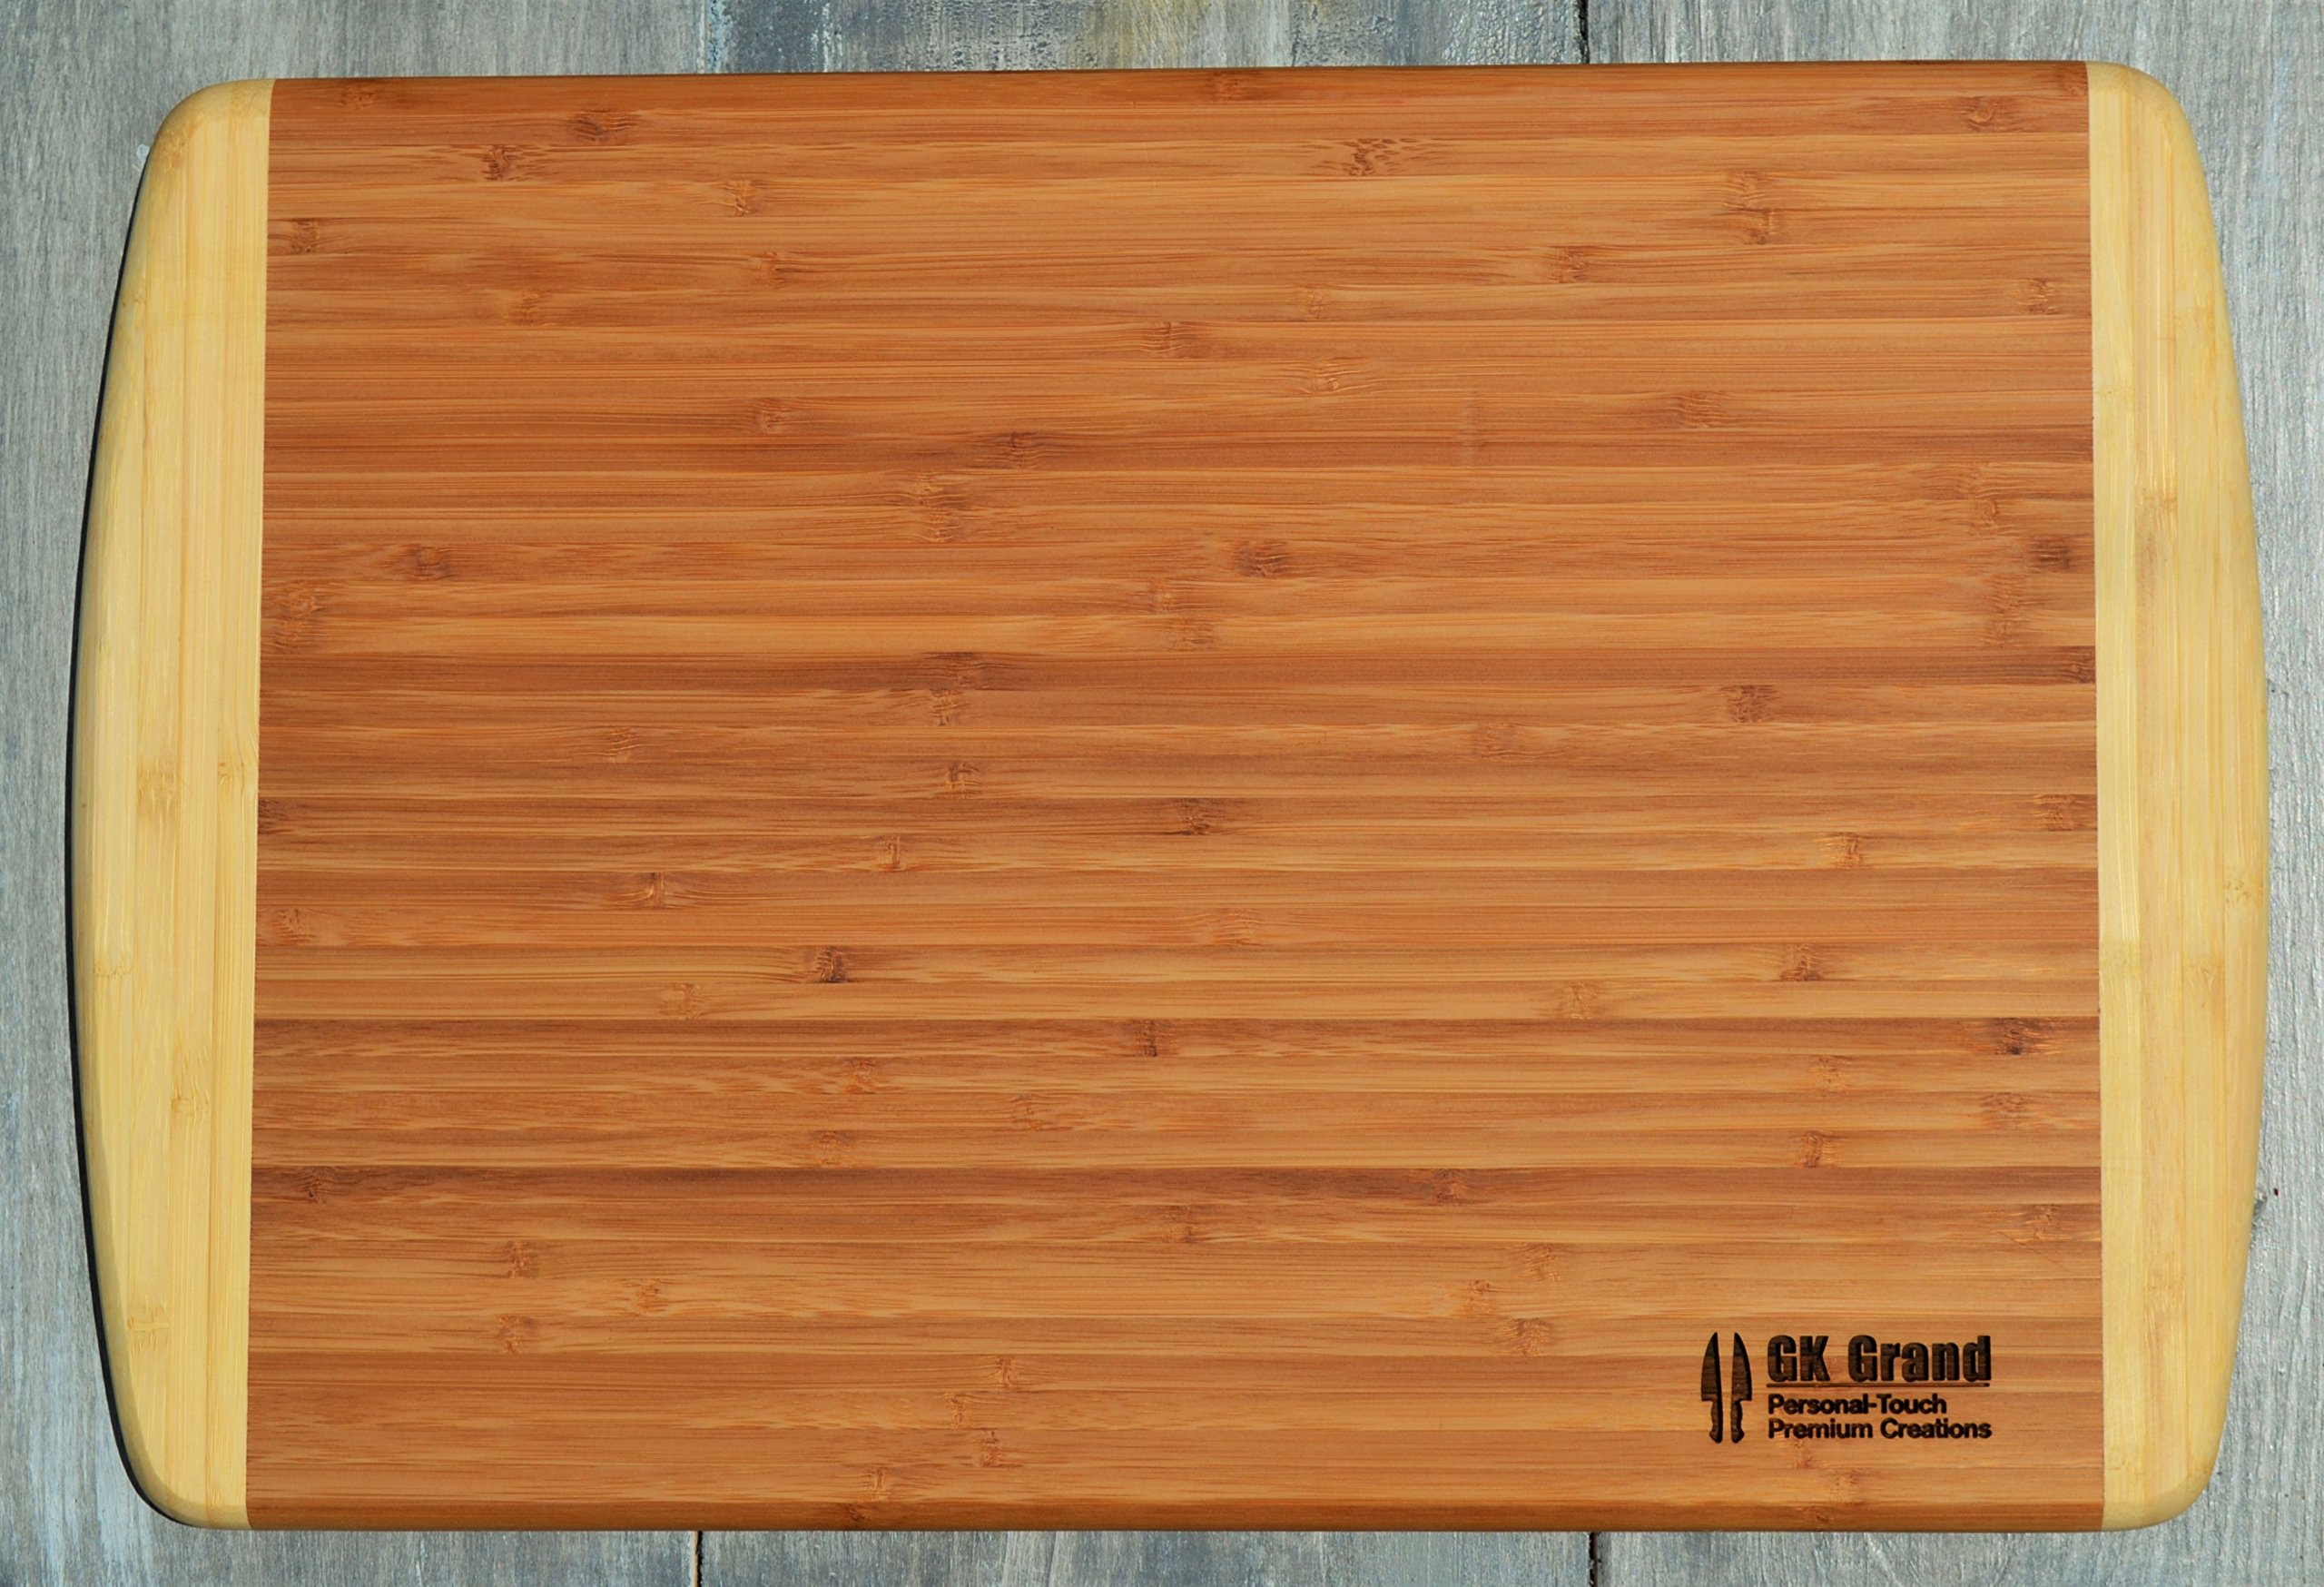 GIFT DAD FATHER ~ Engraved Large 2-Tone Bamboo Cutting Board for Dad ~ 2-Sided Design ~ Engraved Side Designed For Display ~ Reverse Side For Usage ~ Birthday Gift Dad Christmas Gift Fathers Day Gift by GK Grand Personal-Touch Premium Creations (Image #4)